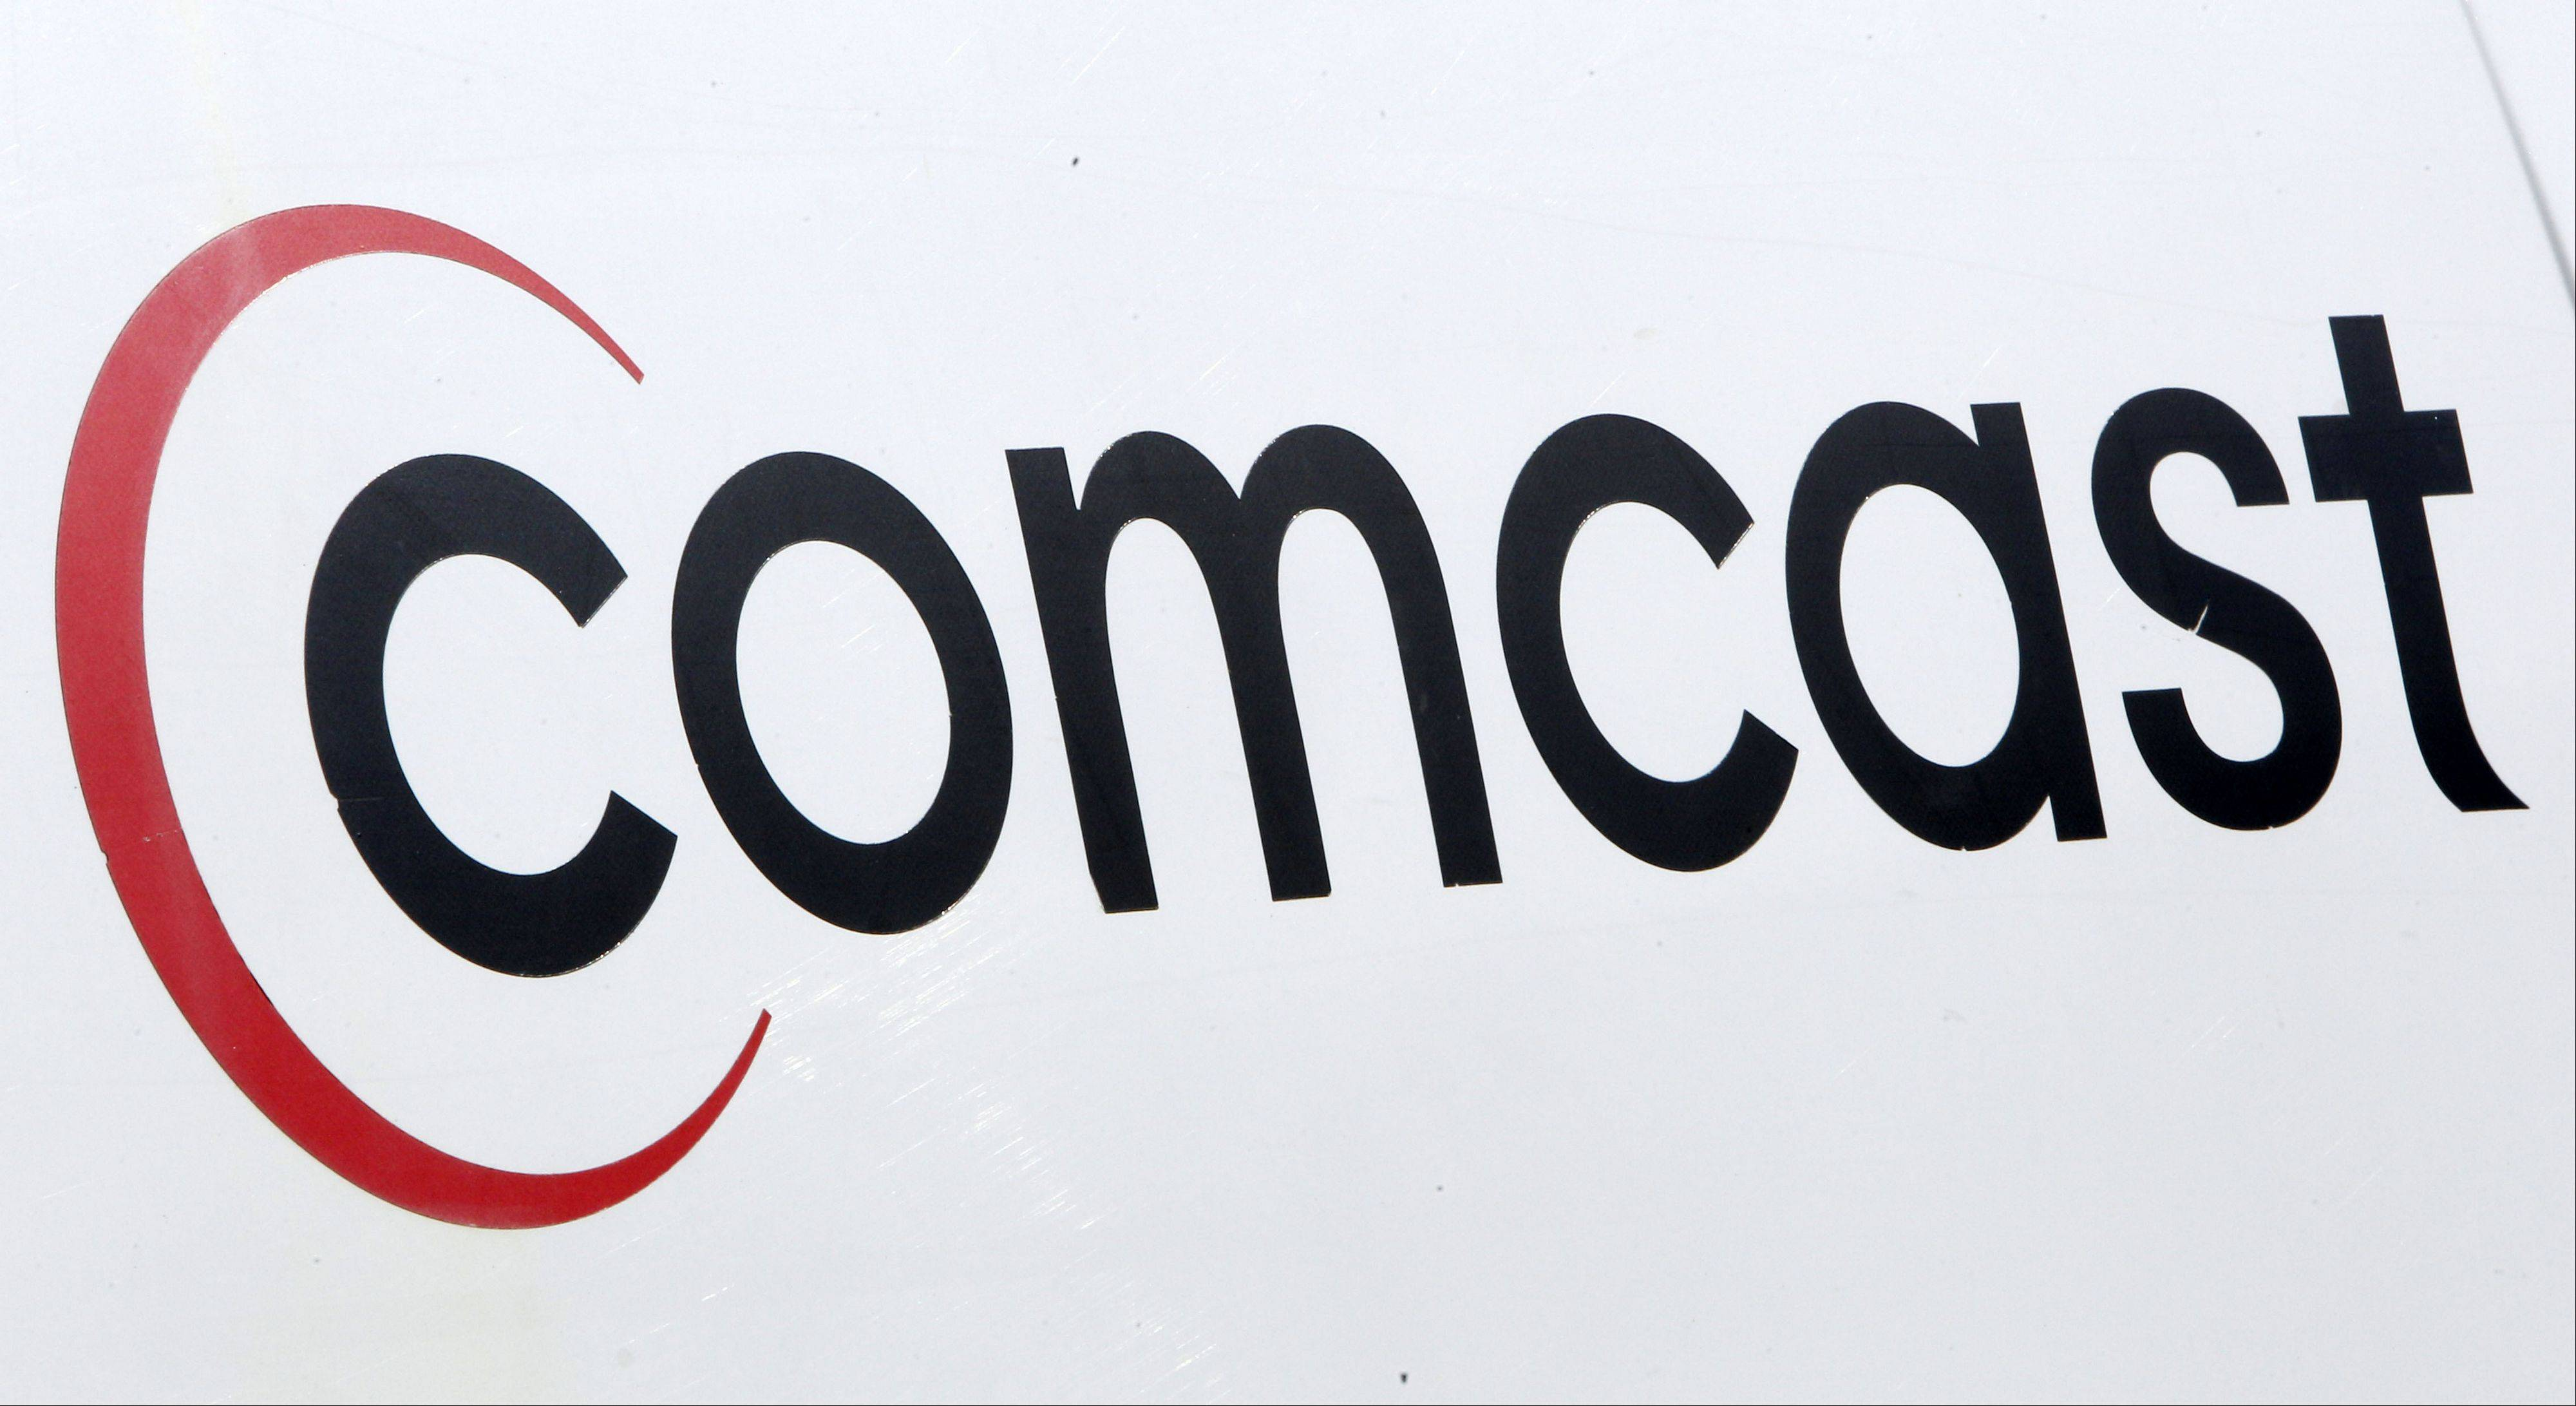 Comcast Corp. plans to start selling movies and TV shows from its set-top box before the end of the year.